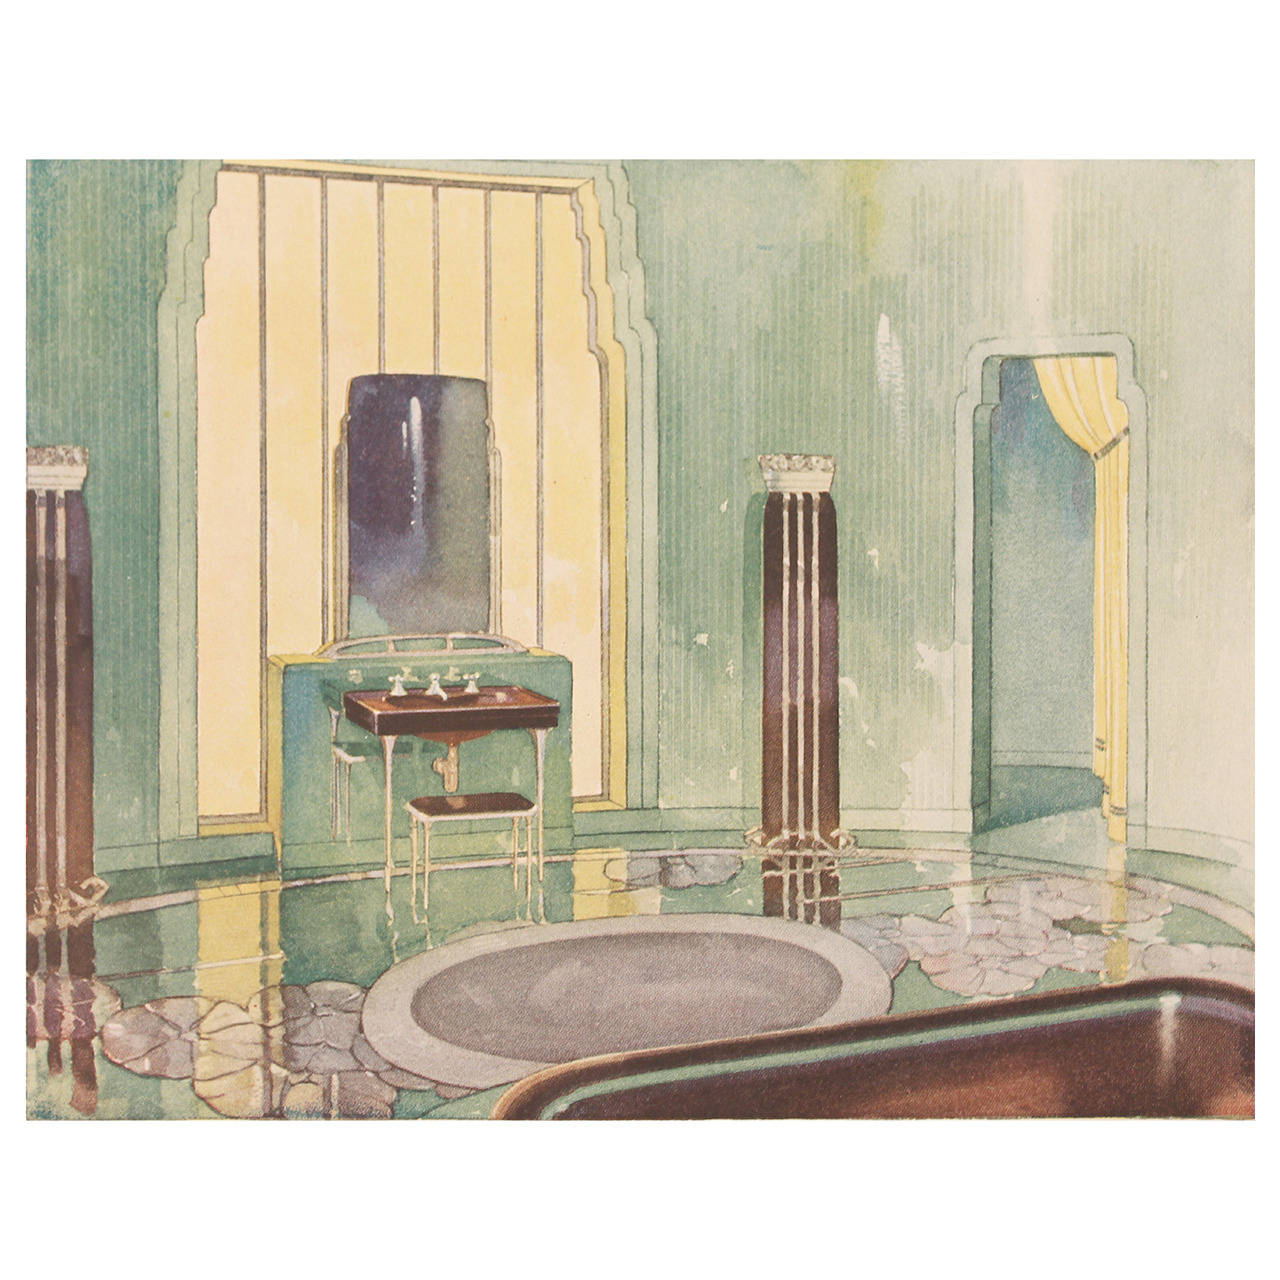 1931 art deco bathroom interior design architecture reference book at 1stdibs Bathroom design pictures books